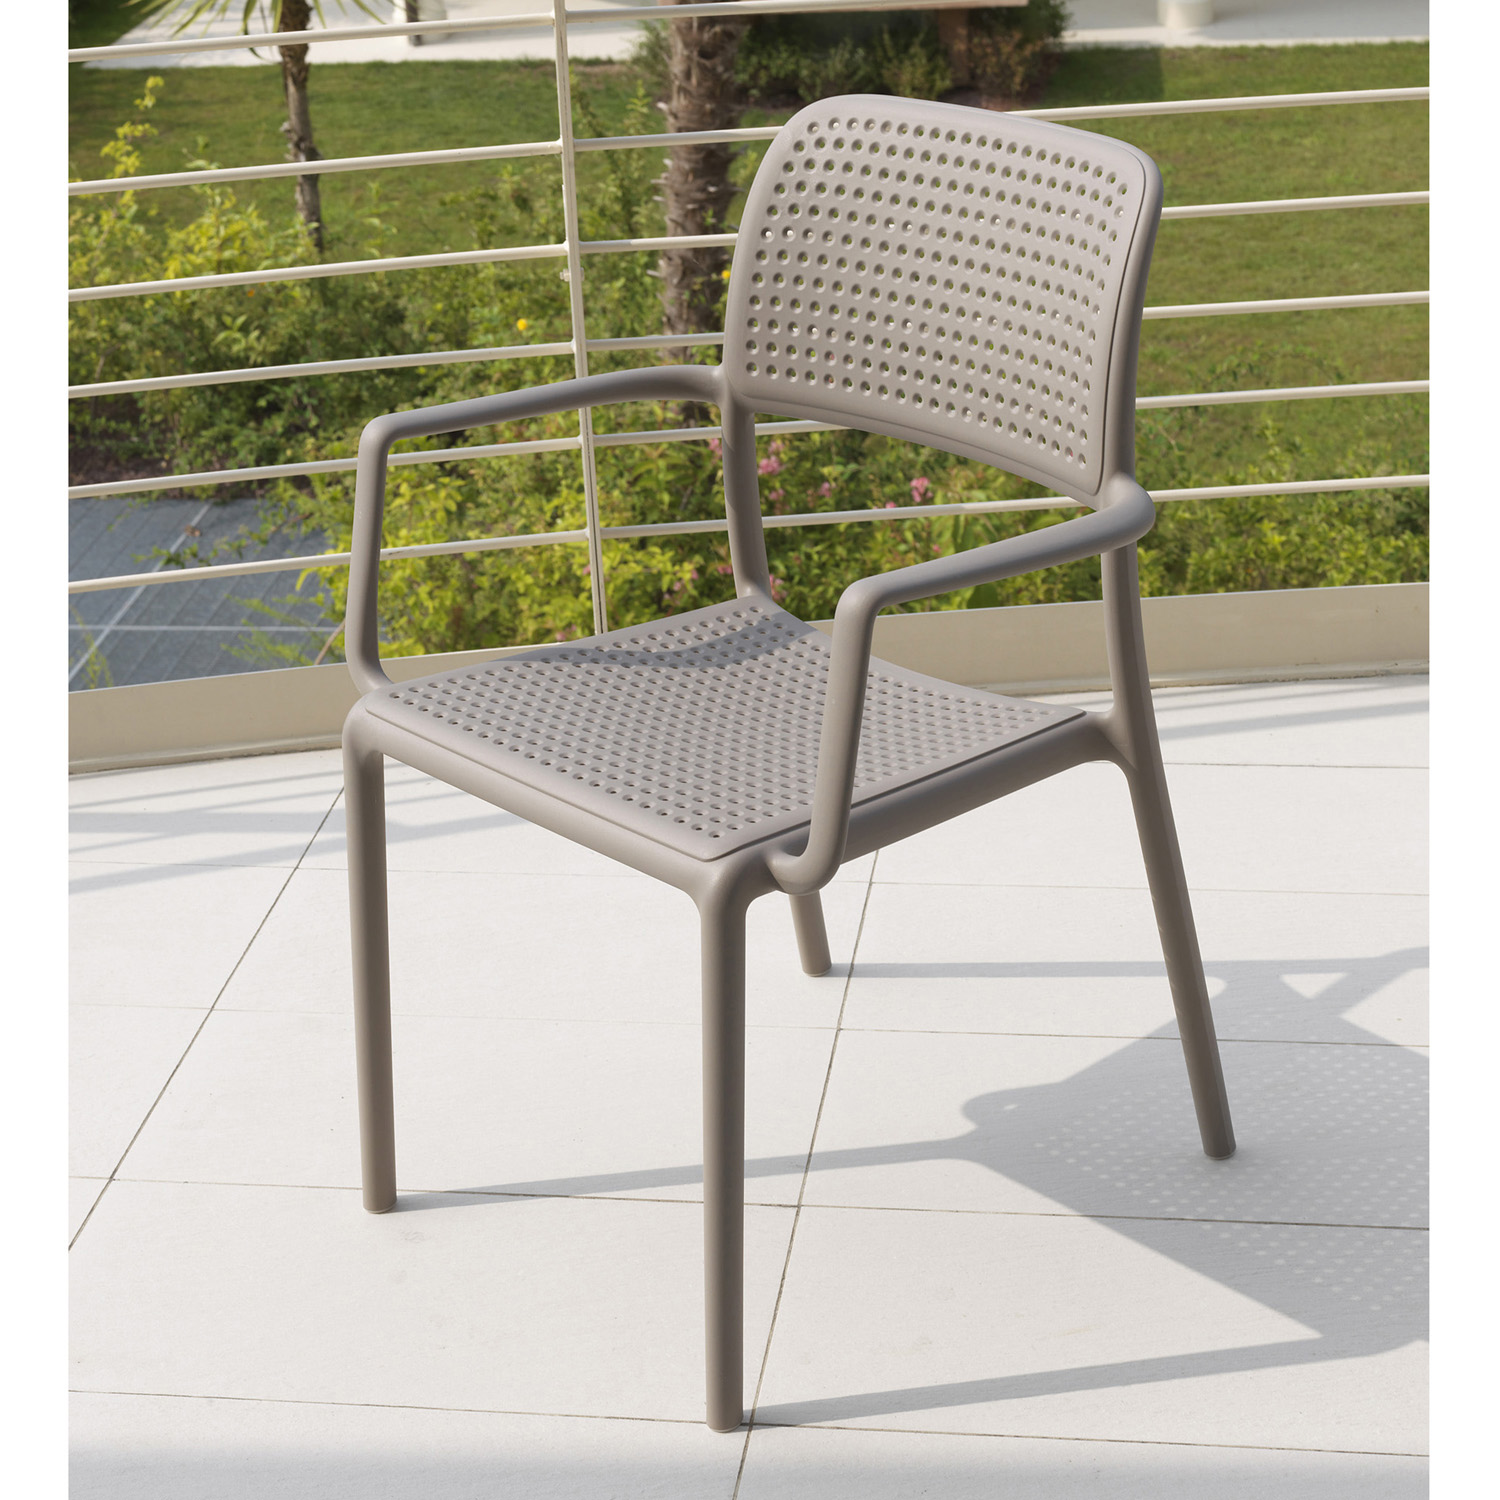 Nardi Bora Chair Turtle Dove Pack of 2 - Ruby's Garden Boutique